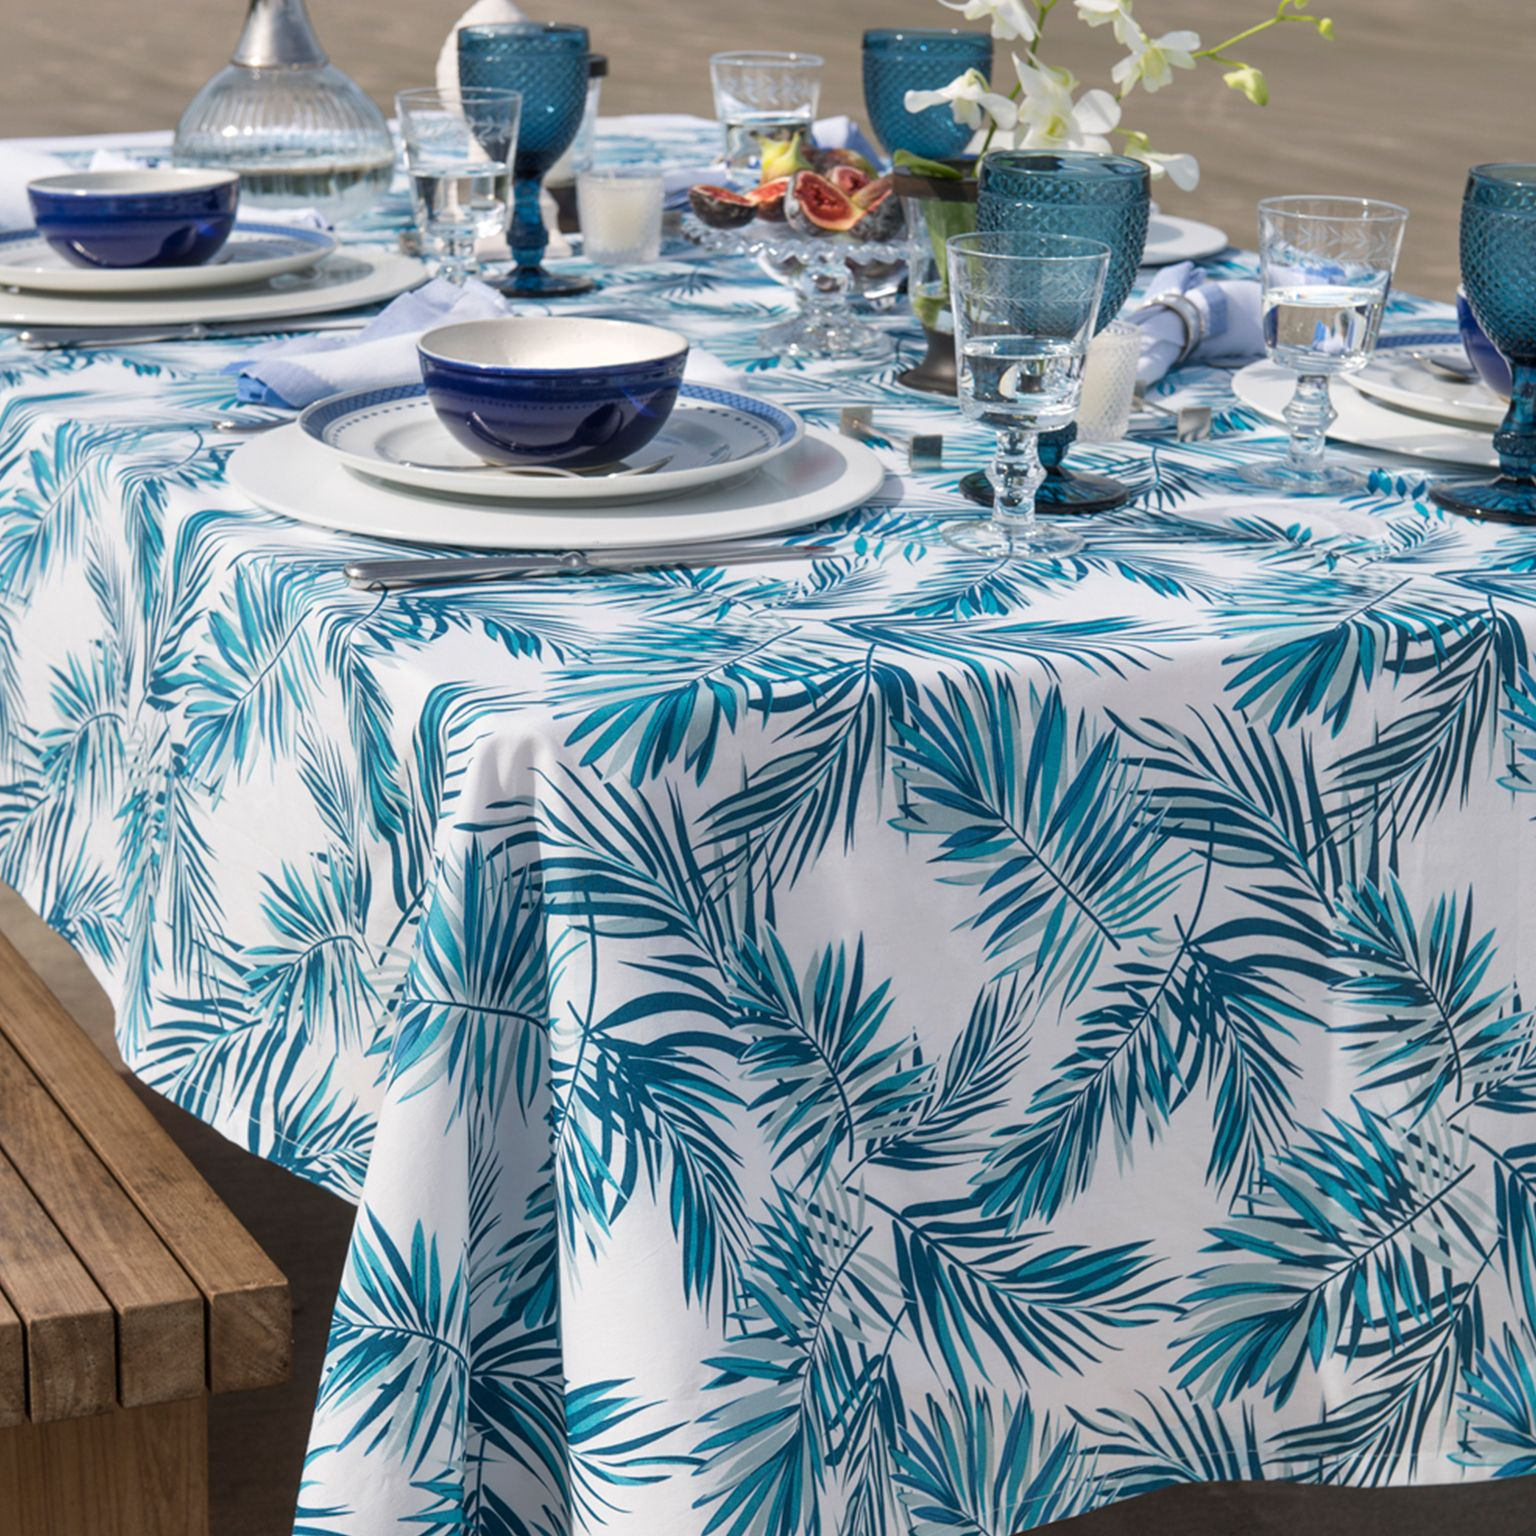 Toalha de Mesa Home Design Tropical